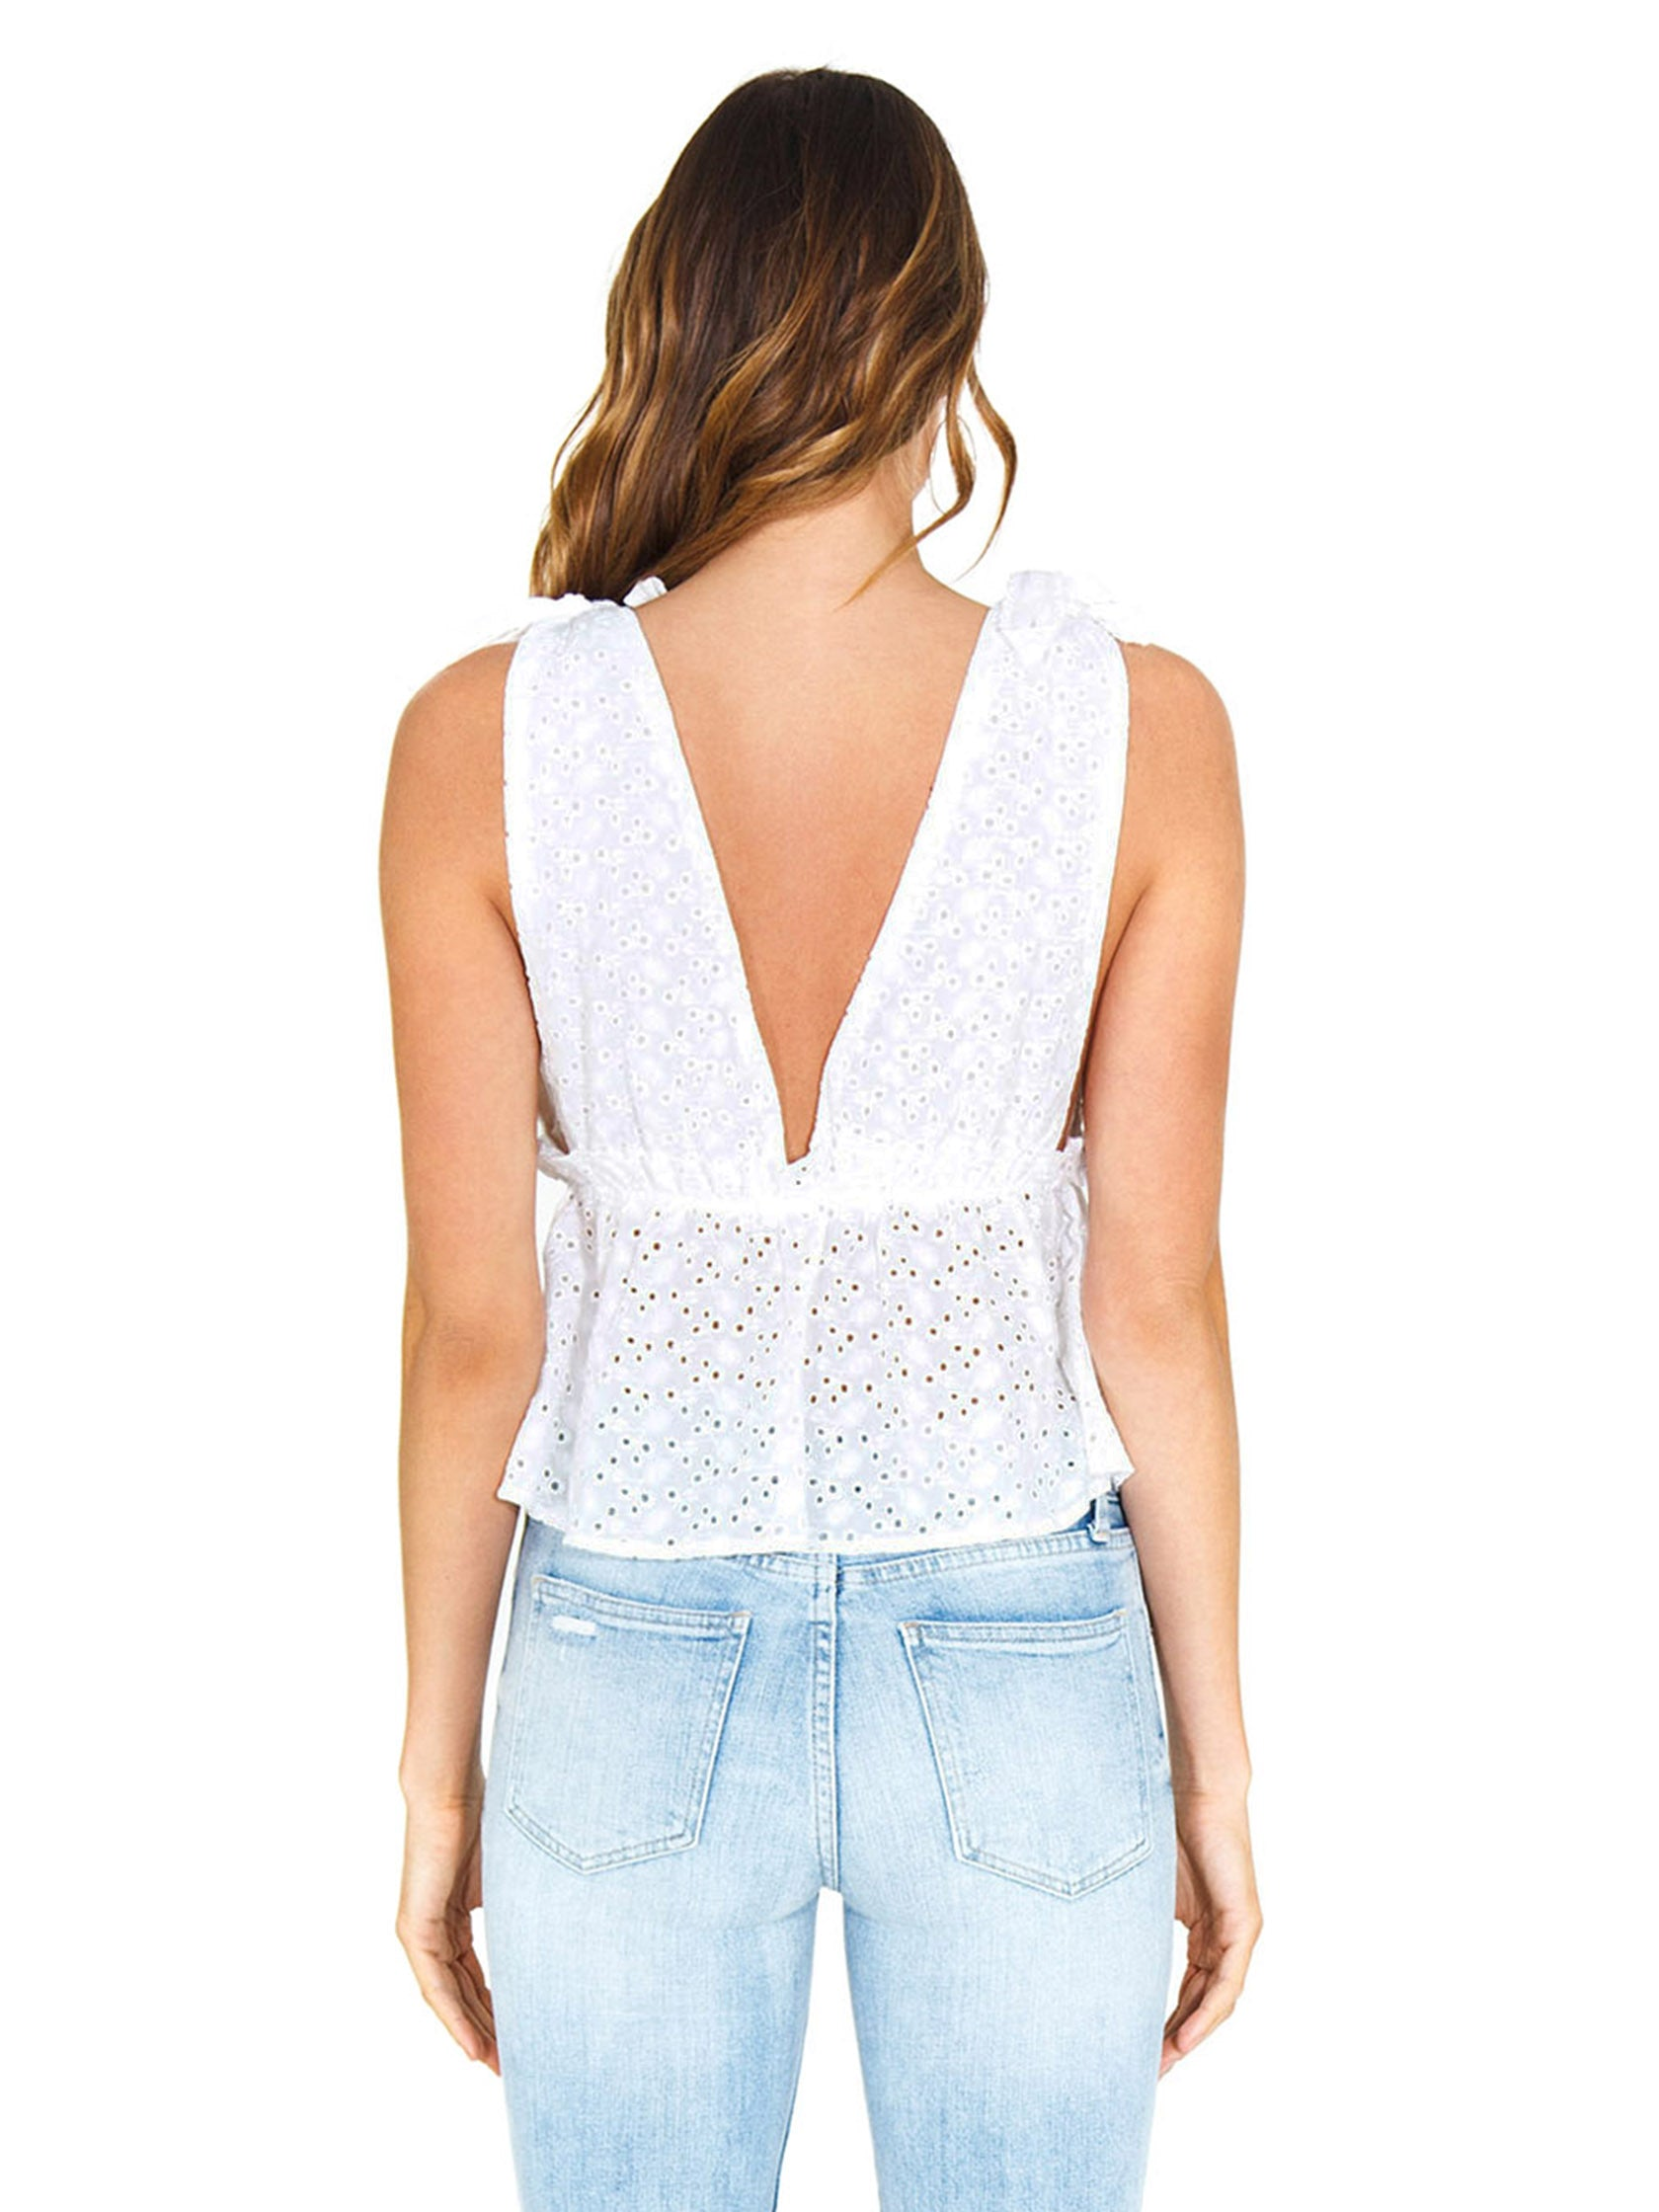 Women outfit in a top rental from FashionPass called Plunging Eyelet Top